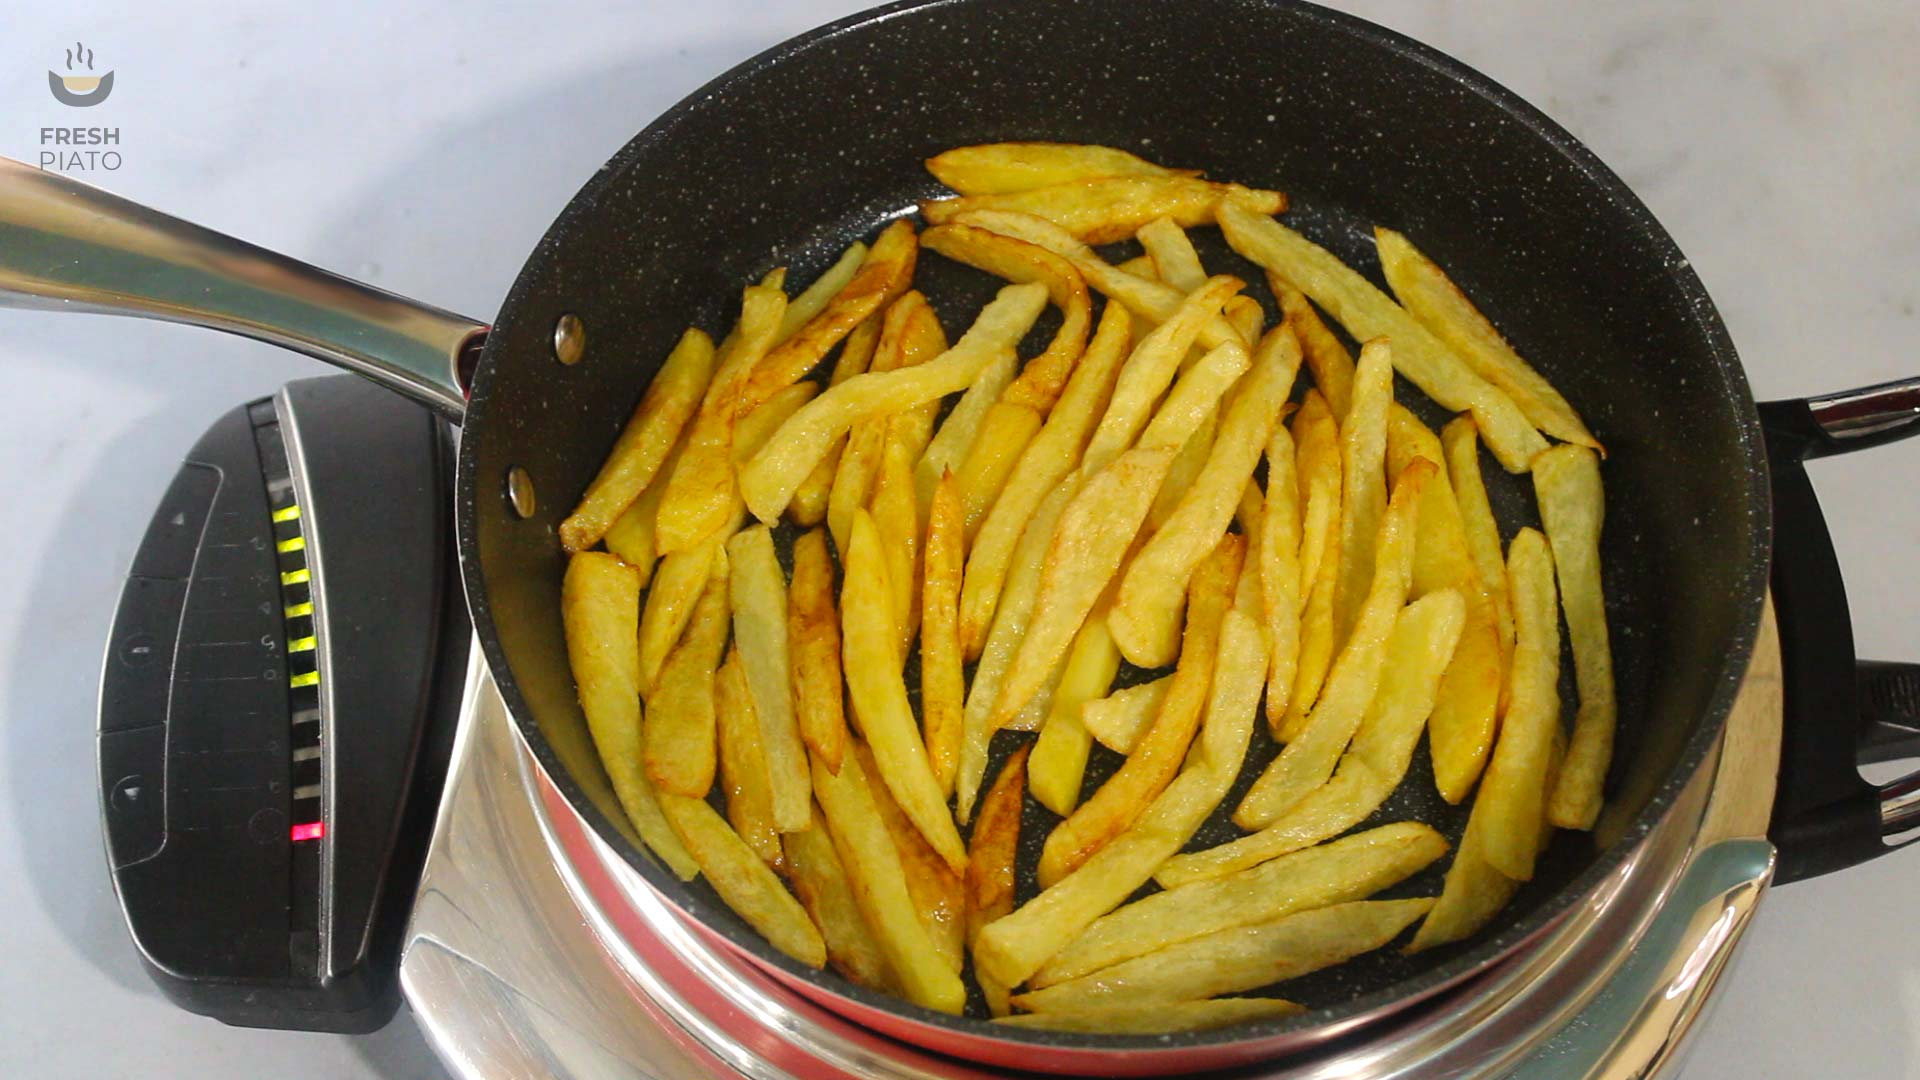 Add the fried potatoes in an empty non-stick skillet